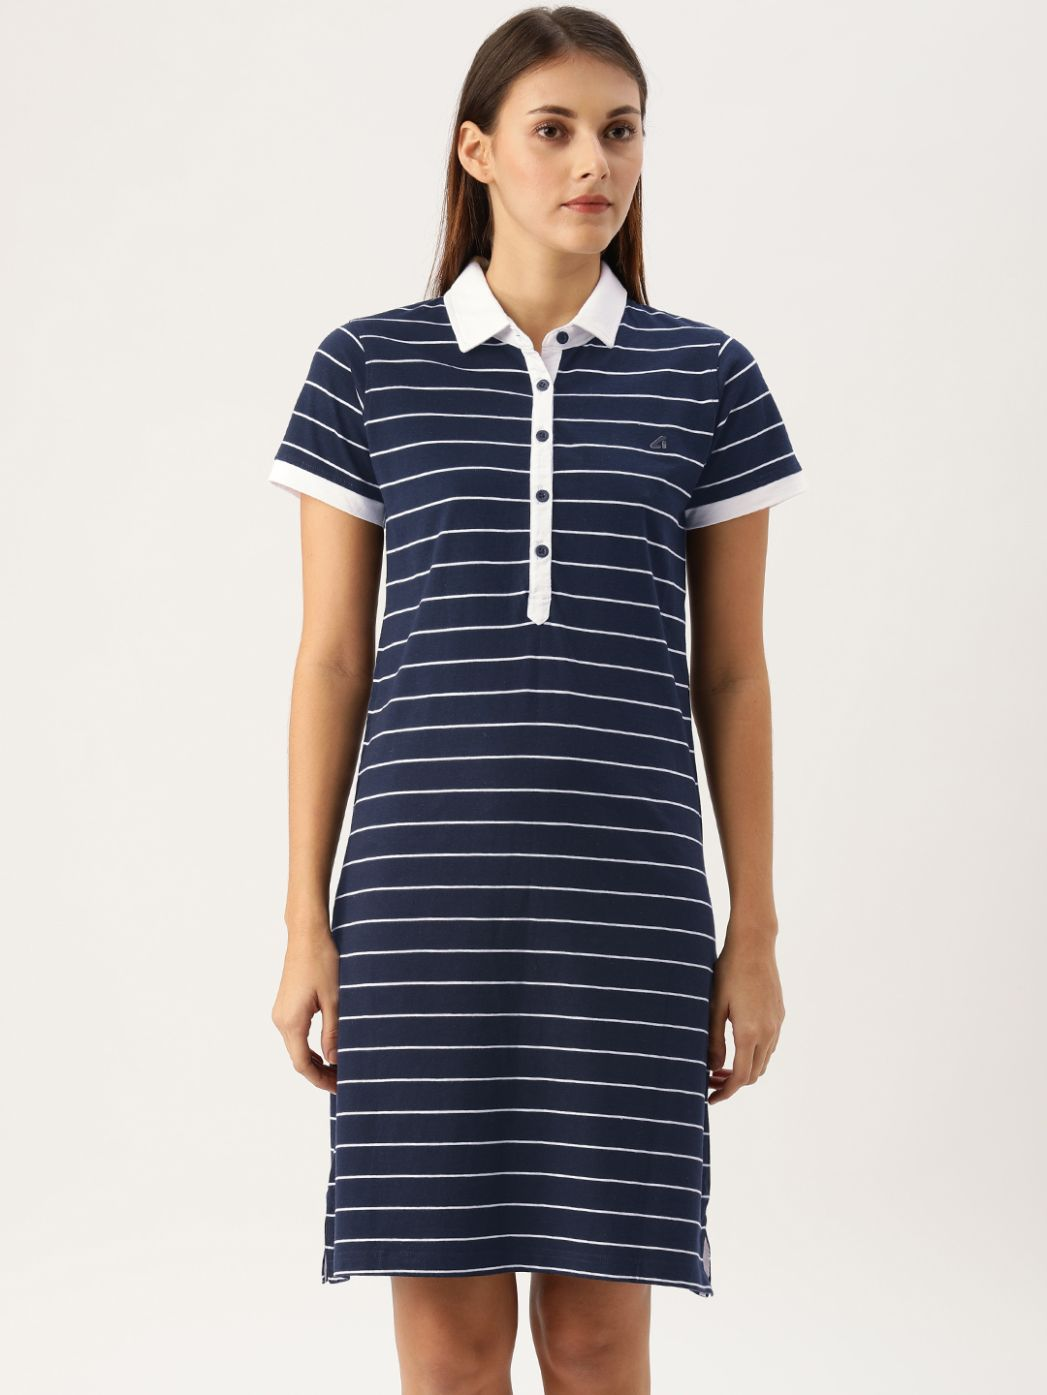 SJ Active Mariner Navy / White Polo Dress